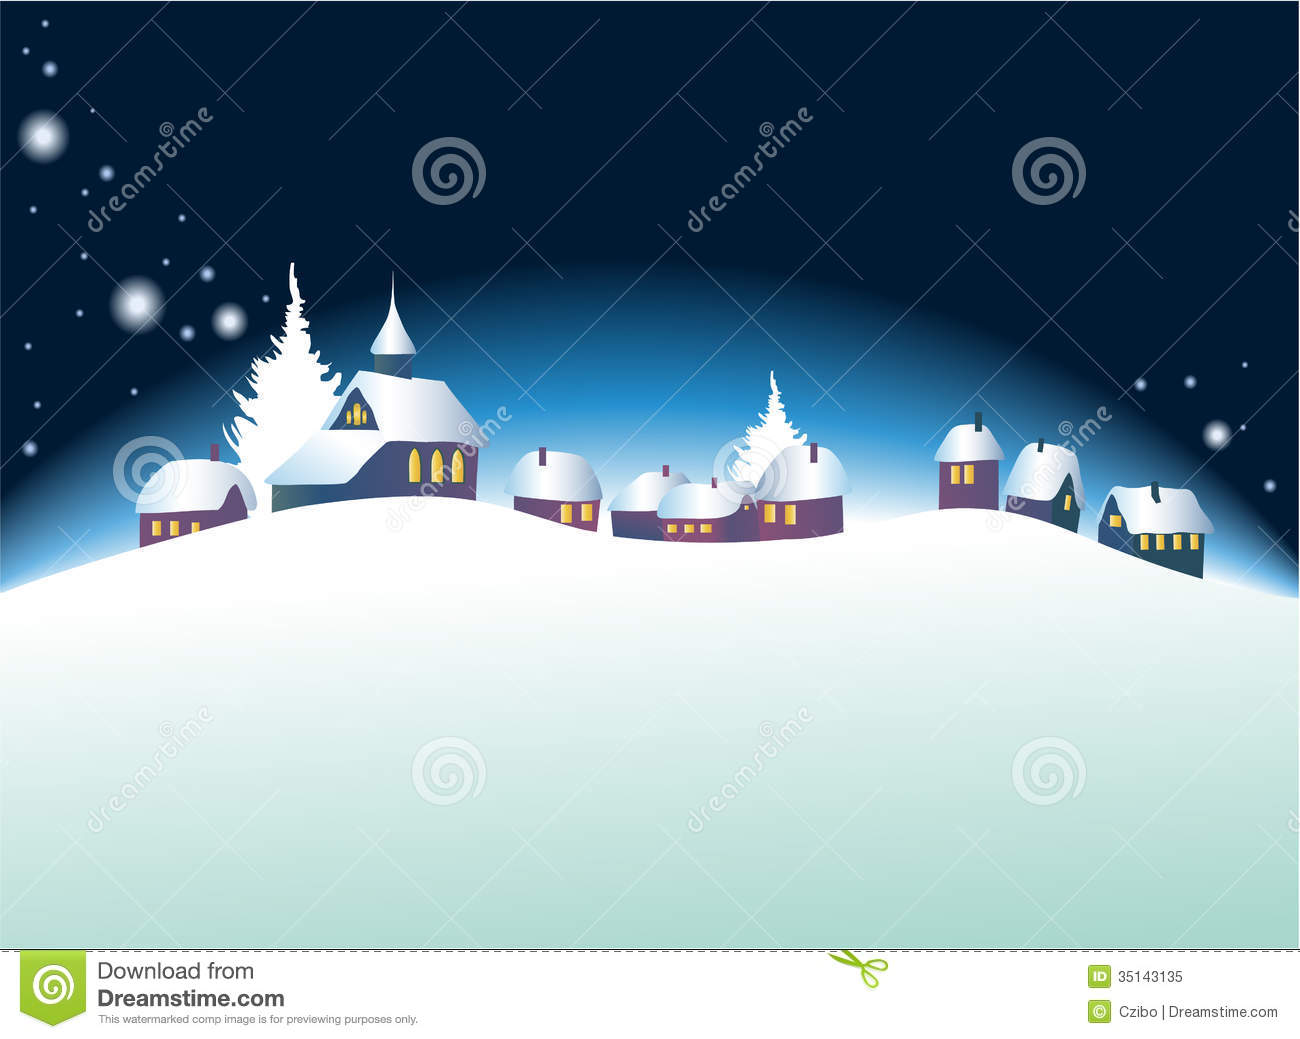 Christmas Landscape Royalty Free Stock Photo - Image: 35143135